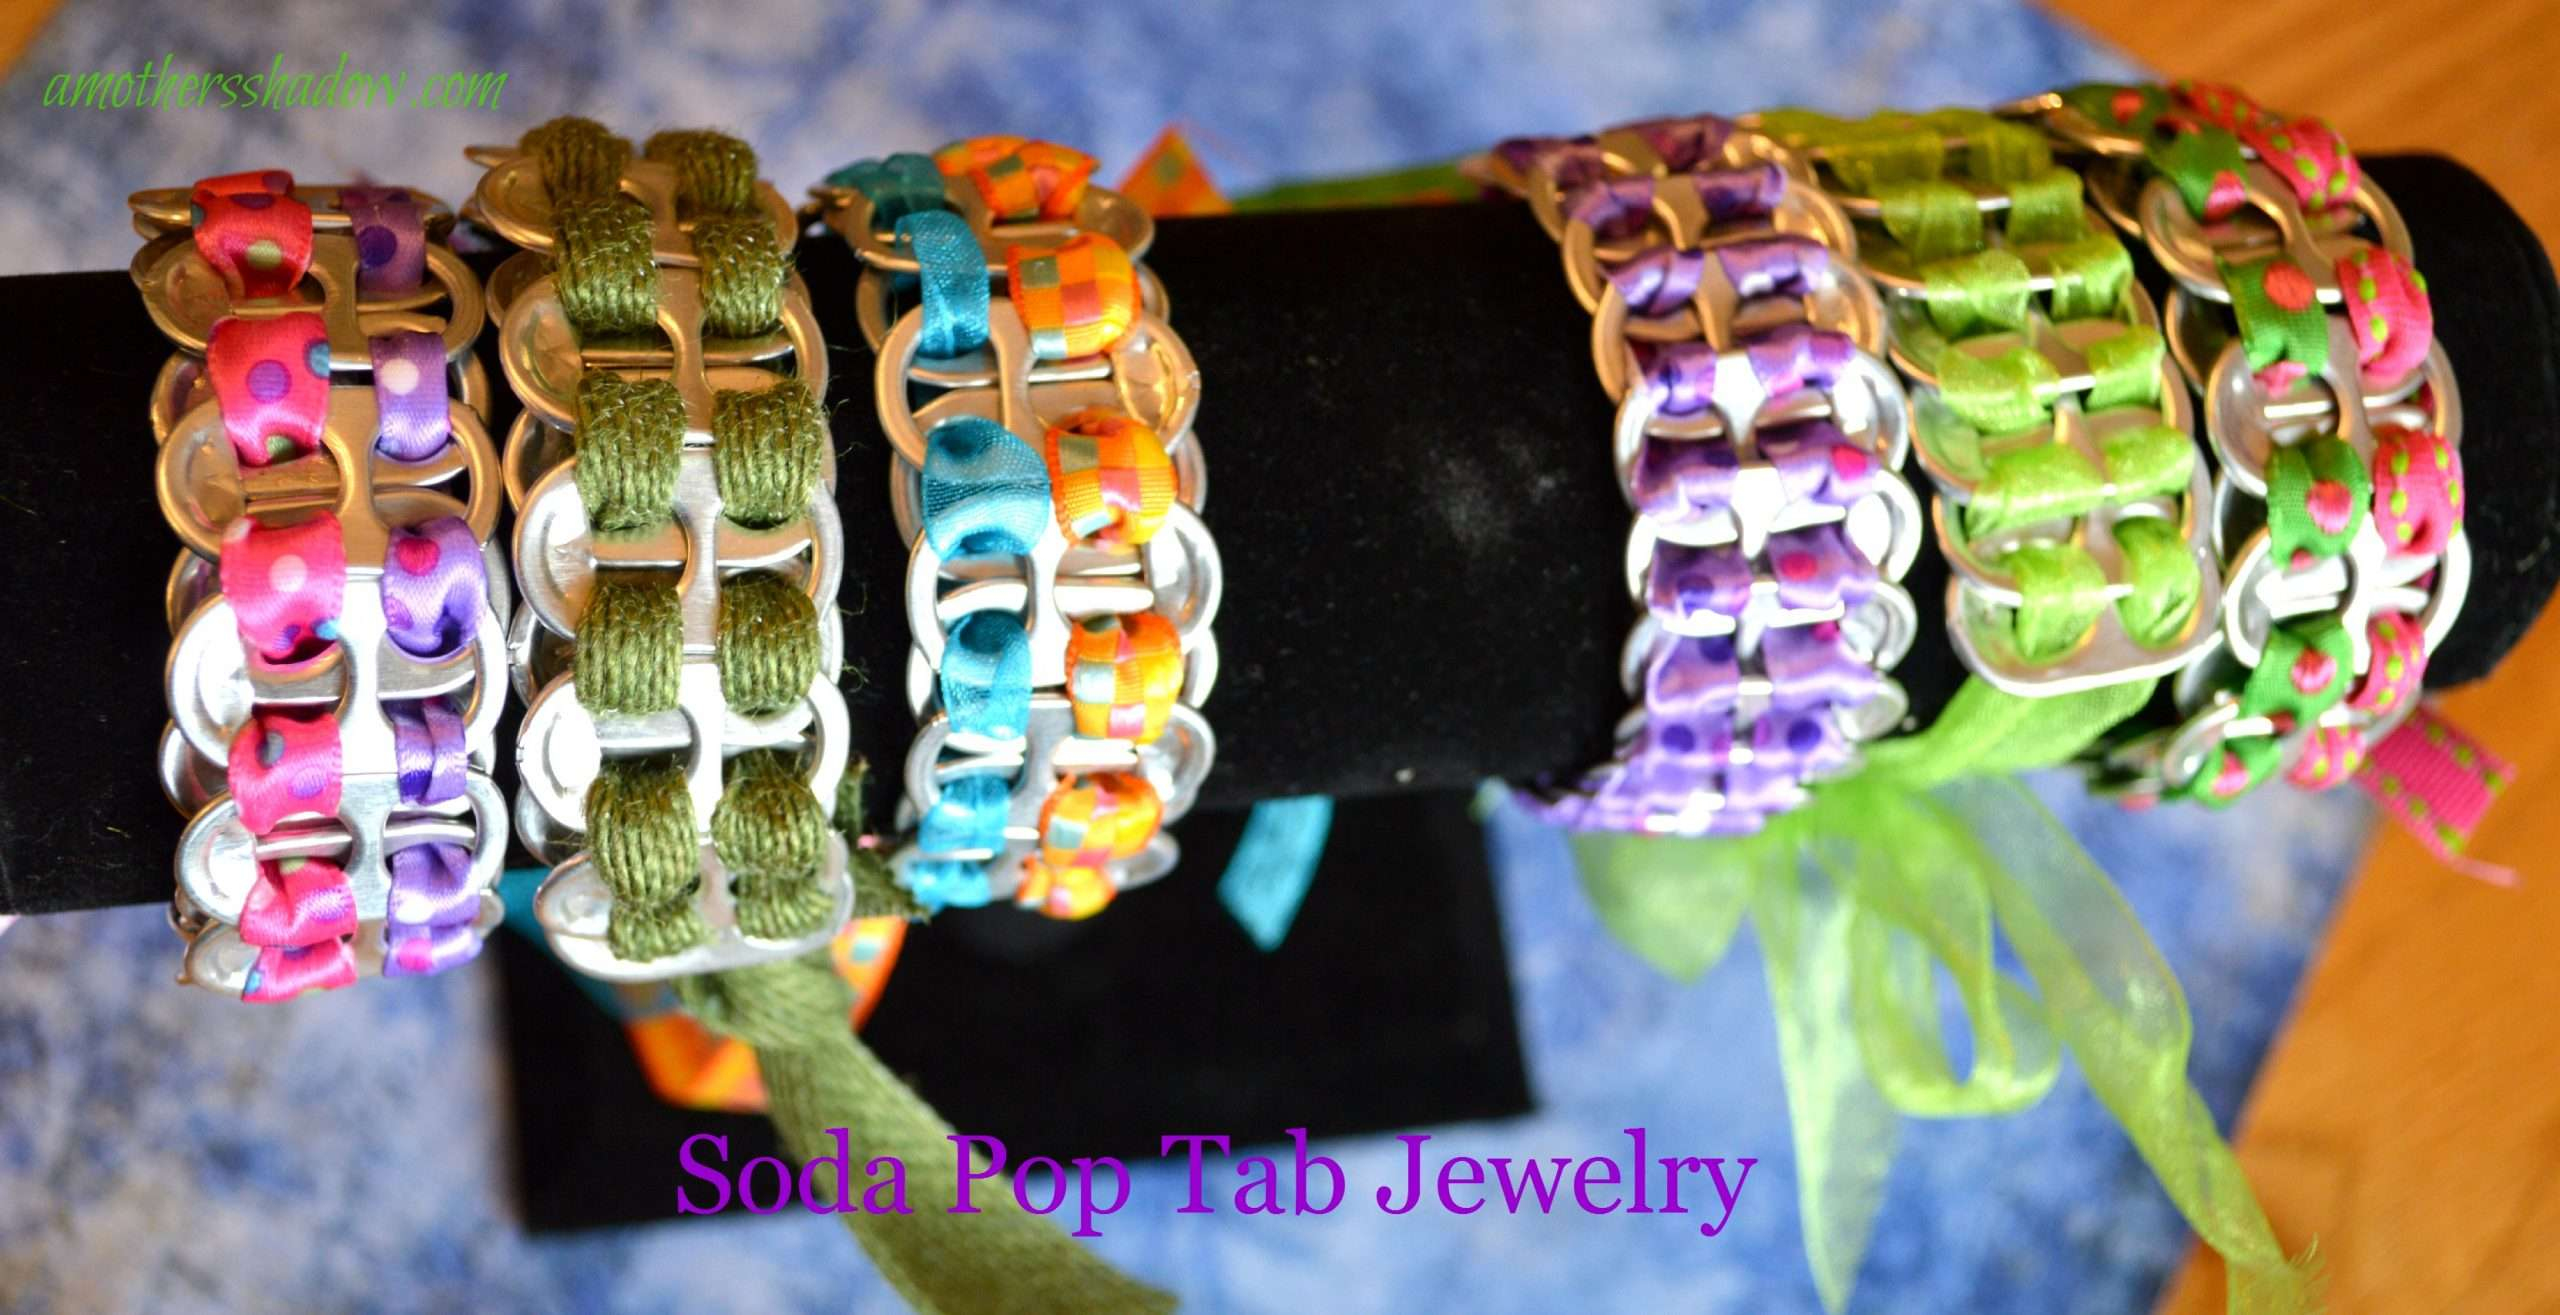 Soda Pop Tab Jewelry and Crafts